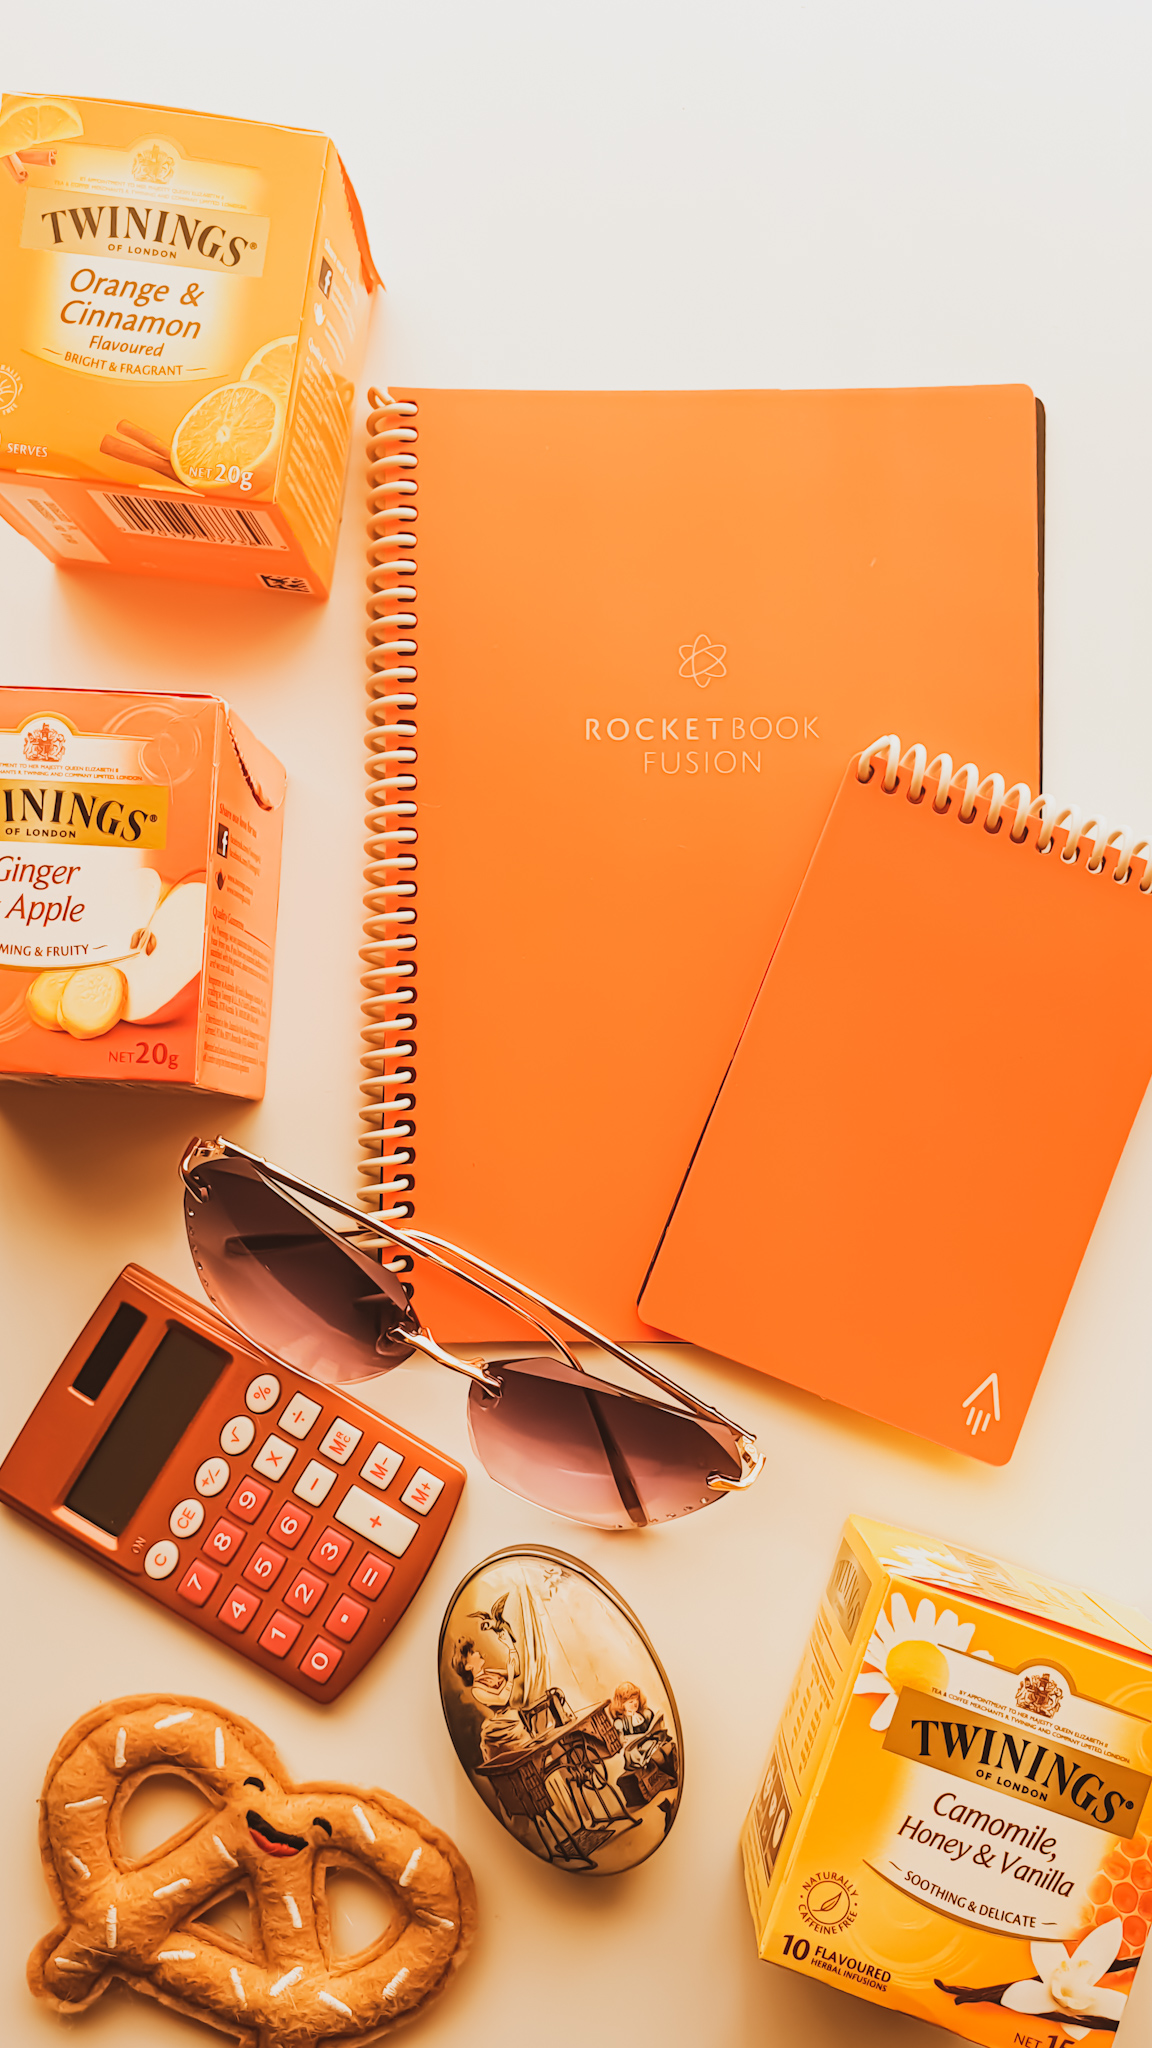 Orange spiral bound rocketbook notebook surrounded by bits and bobs like a happy fabric pretzel and tea boxes.